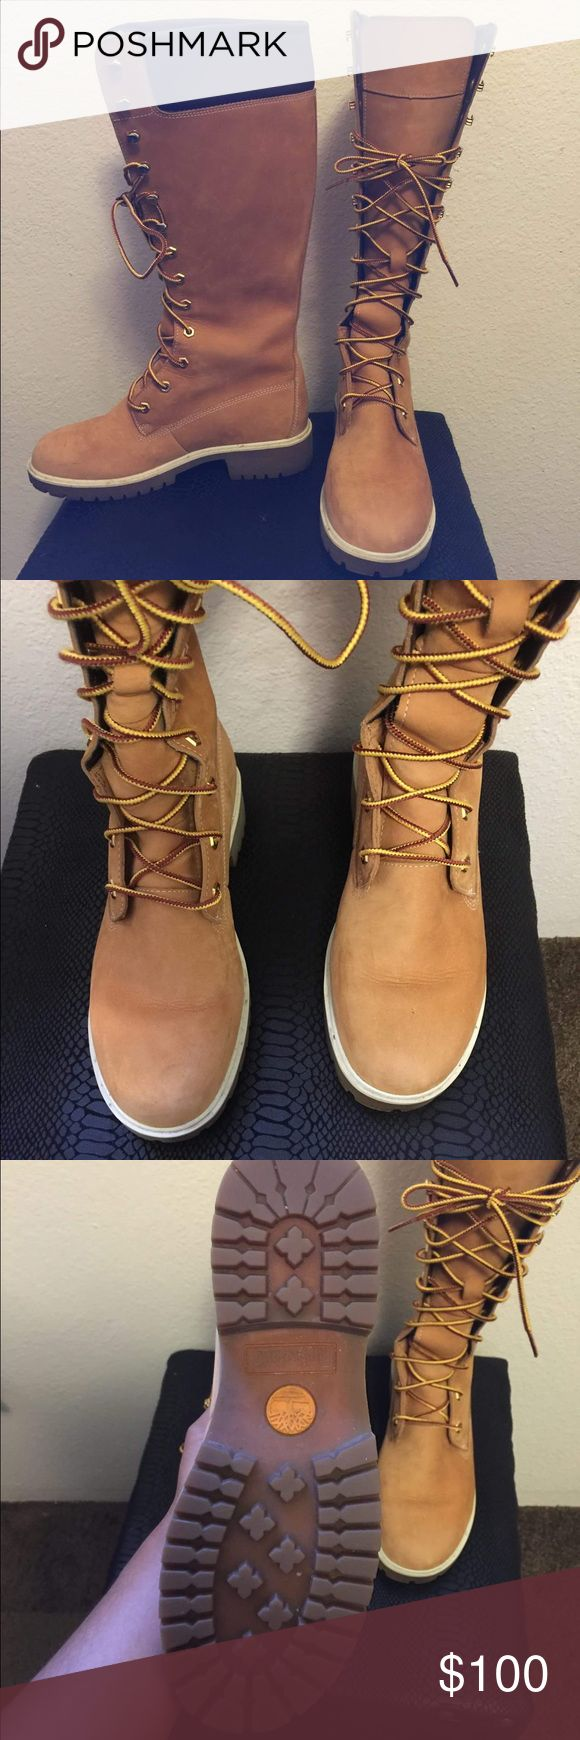 WOMEN'S 14-IN.Timberland ZIP LACE WATERPROOF BOOTS Size: 7.5 women's knee high Timberland Boots!  Condition: Execellent  Asking Price:$110 Retail Price: $200-$250  Bought these for $250 in Atlanta almost 5 years ago!!!! From the photos, you can see I've taken VERY GOOD care of these bad boys! No salt marks from snow and very little scuff marks! Only would wear them for special occasions and always cleaned/ sprayed protectant on them! These boots are exclusive and can no longer be purchased…